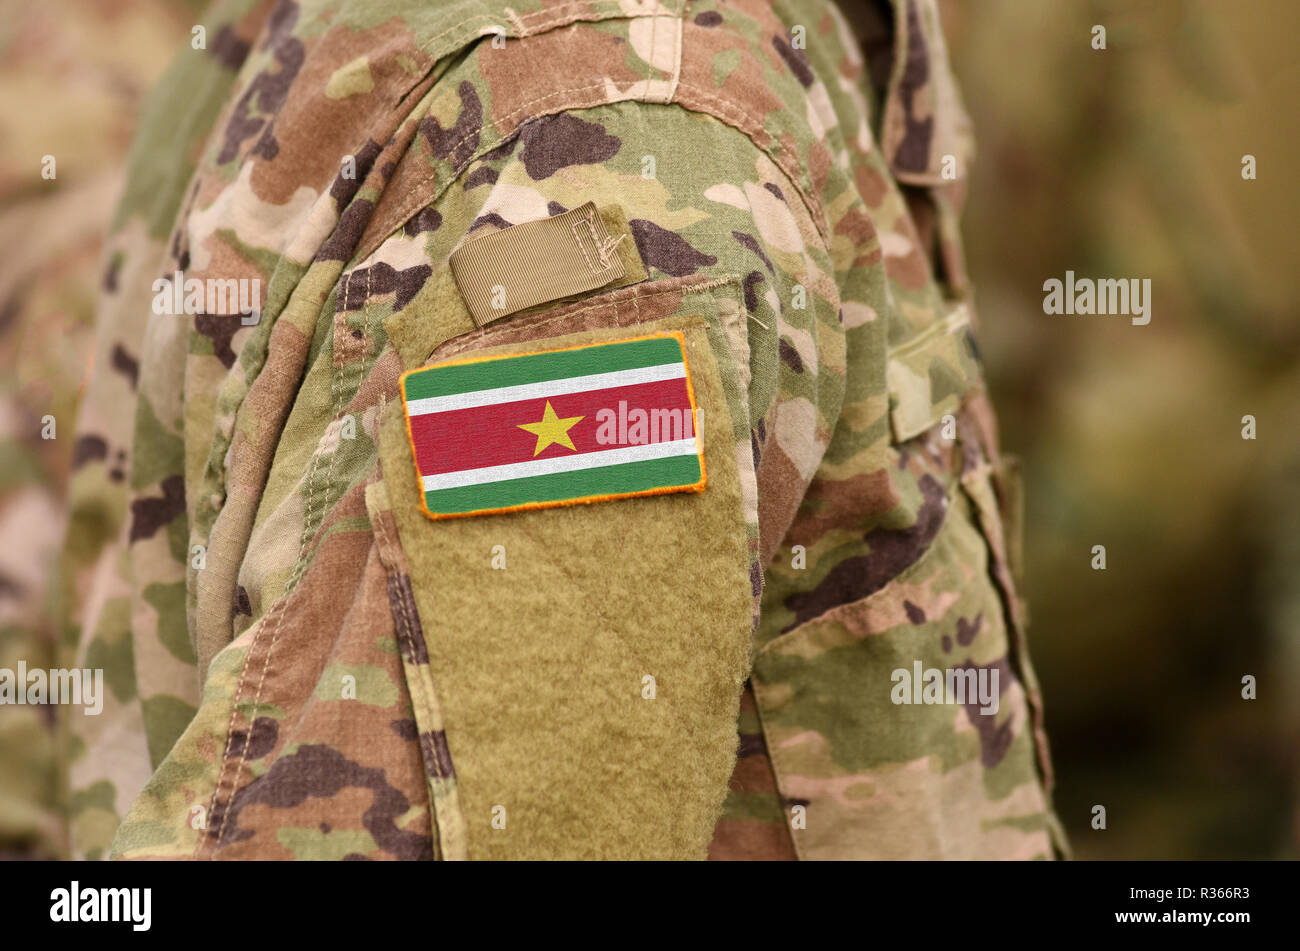 Suriname flag on soldiers arm. Suriname army (collage) Stock Photo